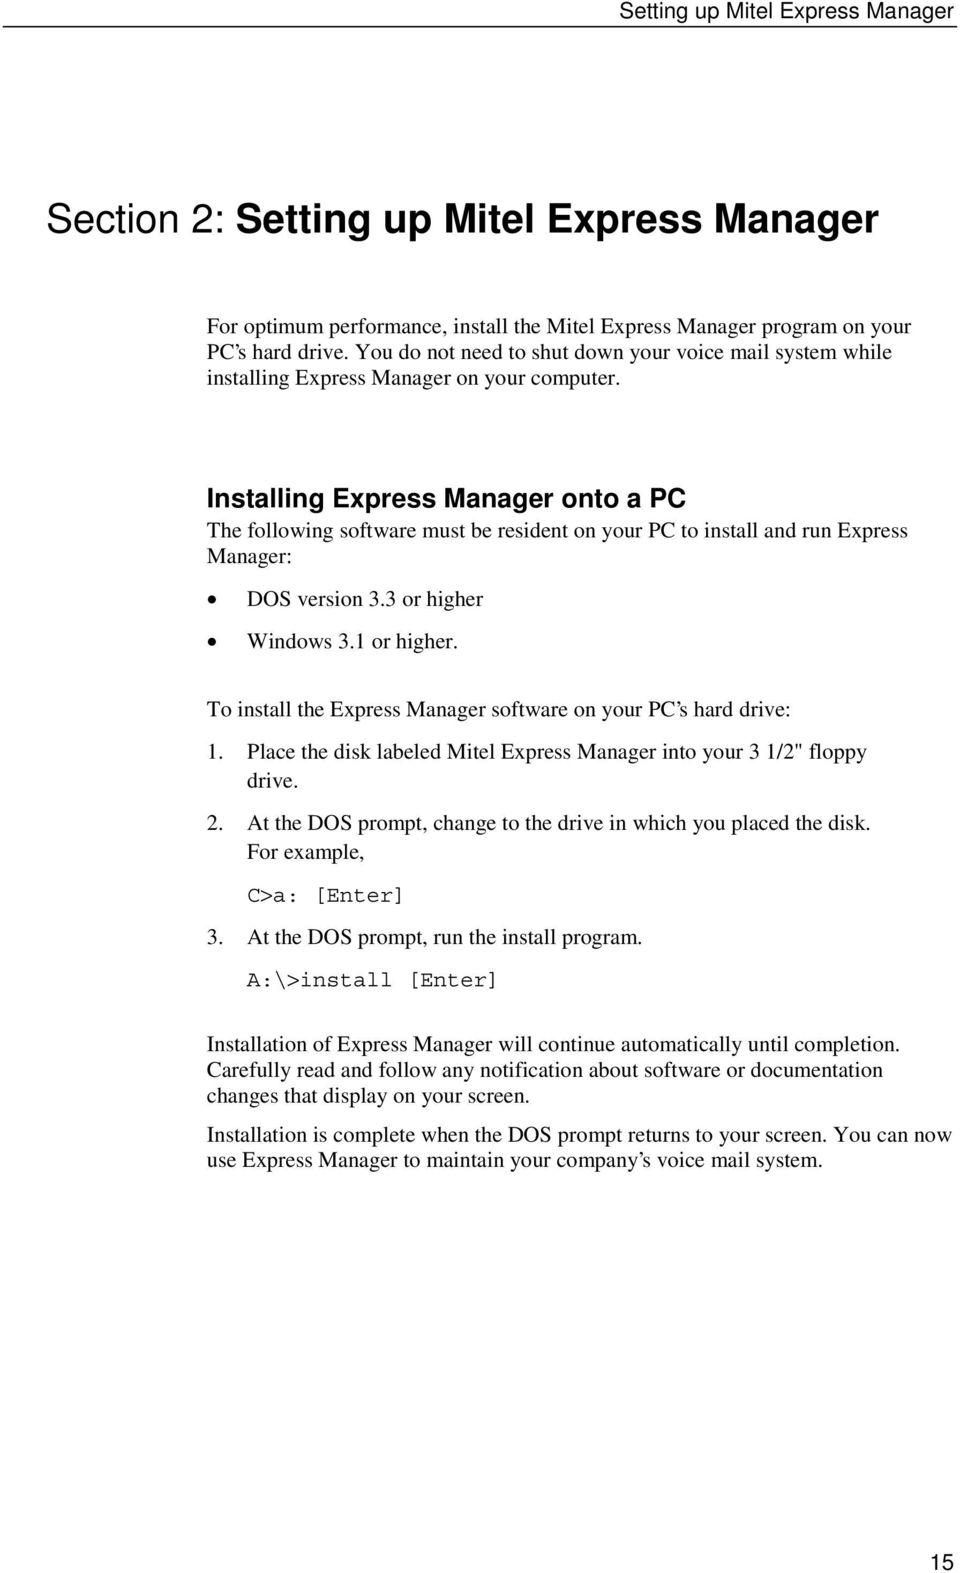 Installing Express Manager onto a PC The following software must be resident on your PC to install and run Express Manager: DOS version 3.3 or higher Windows 3.1 or higher.